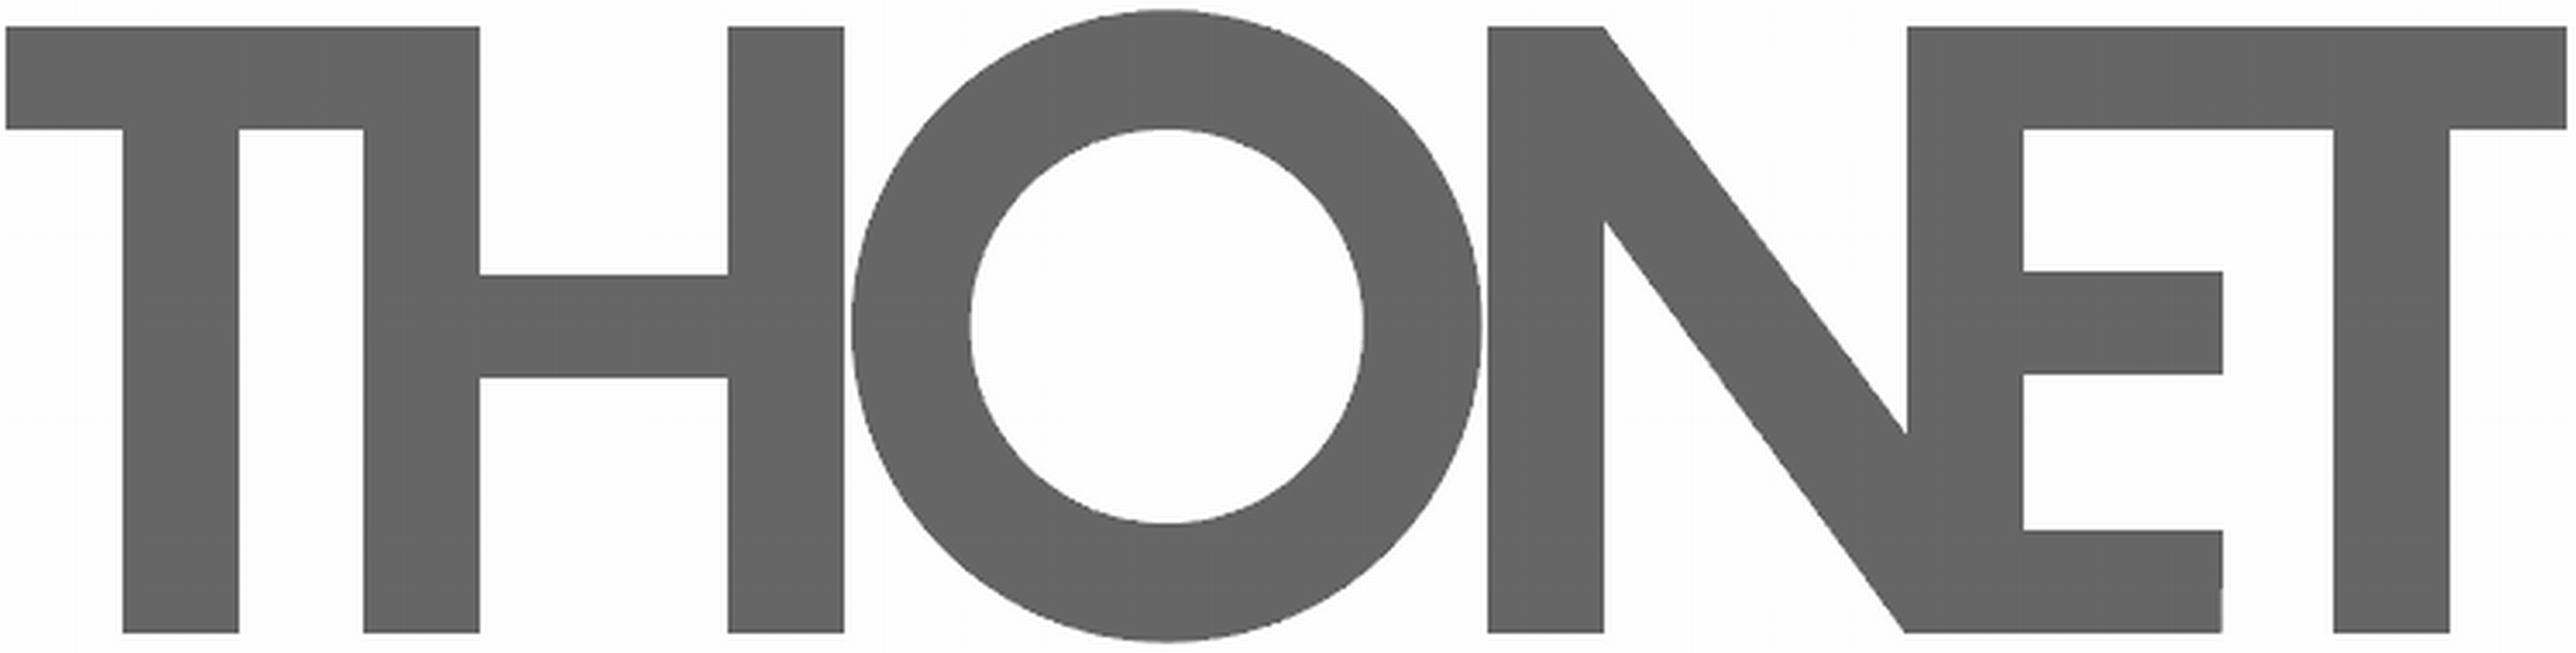 Logo of Thonet